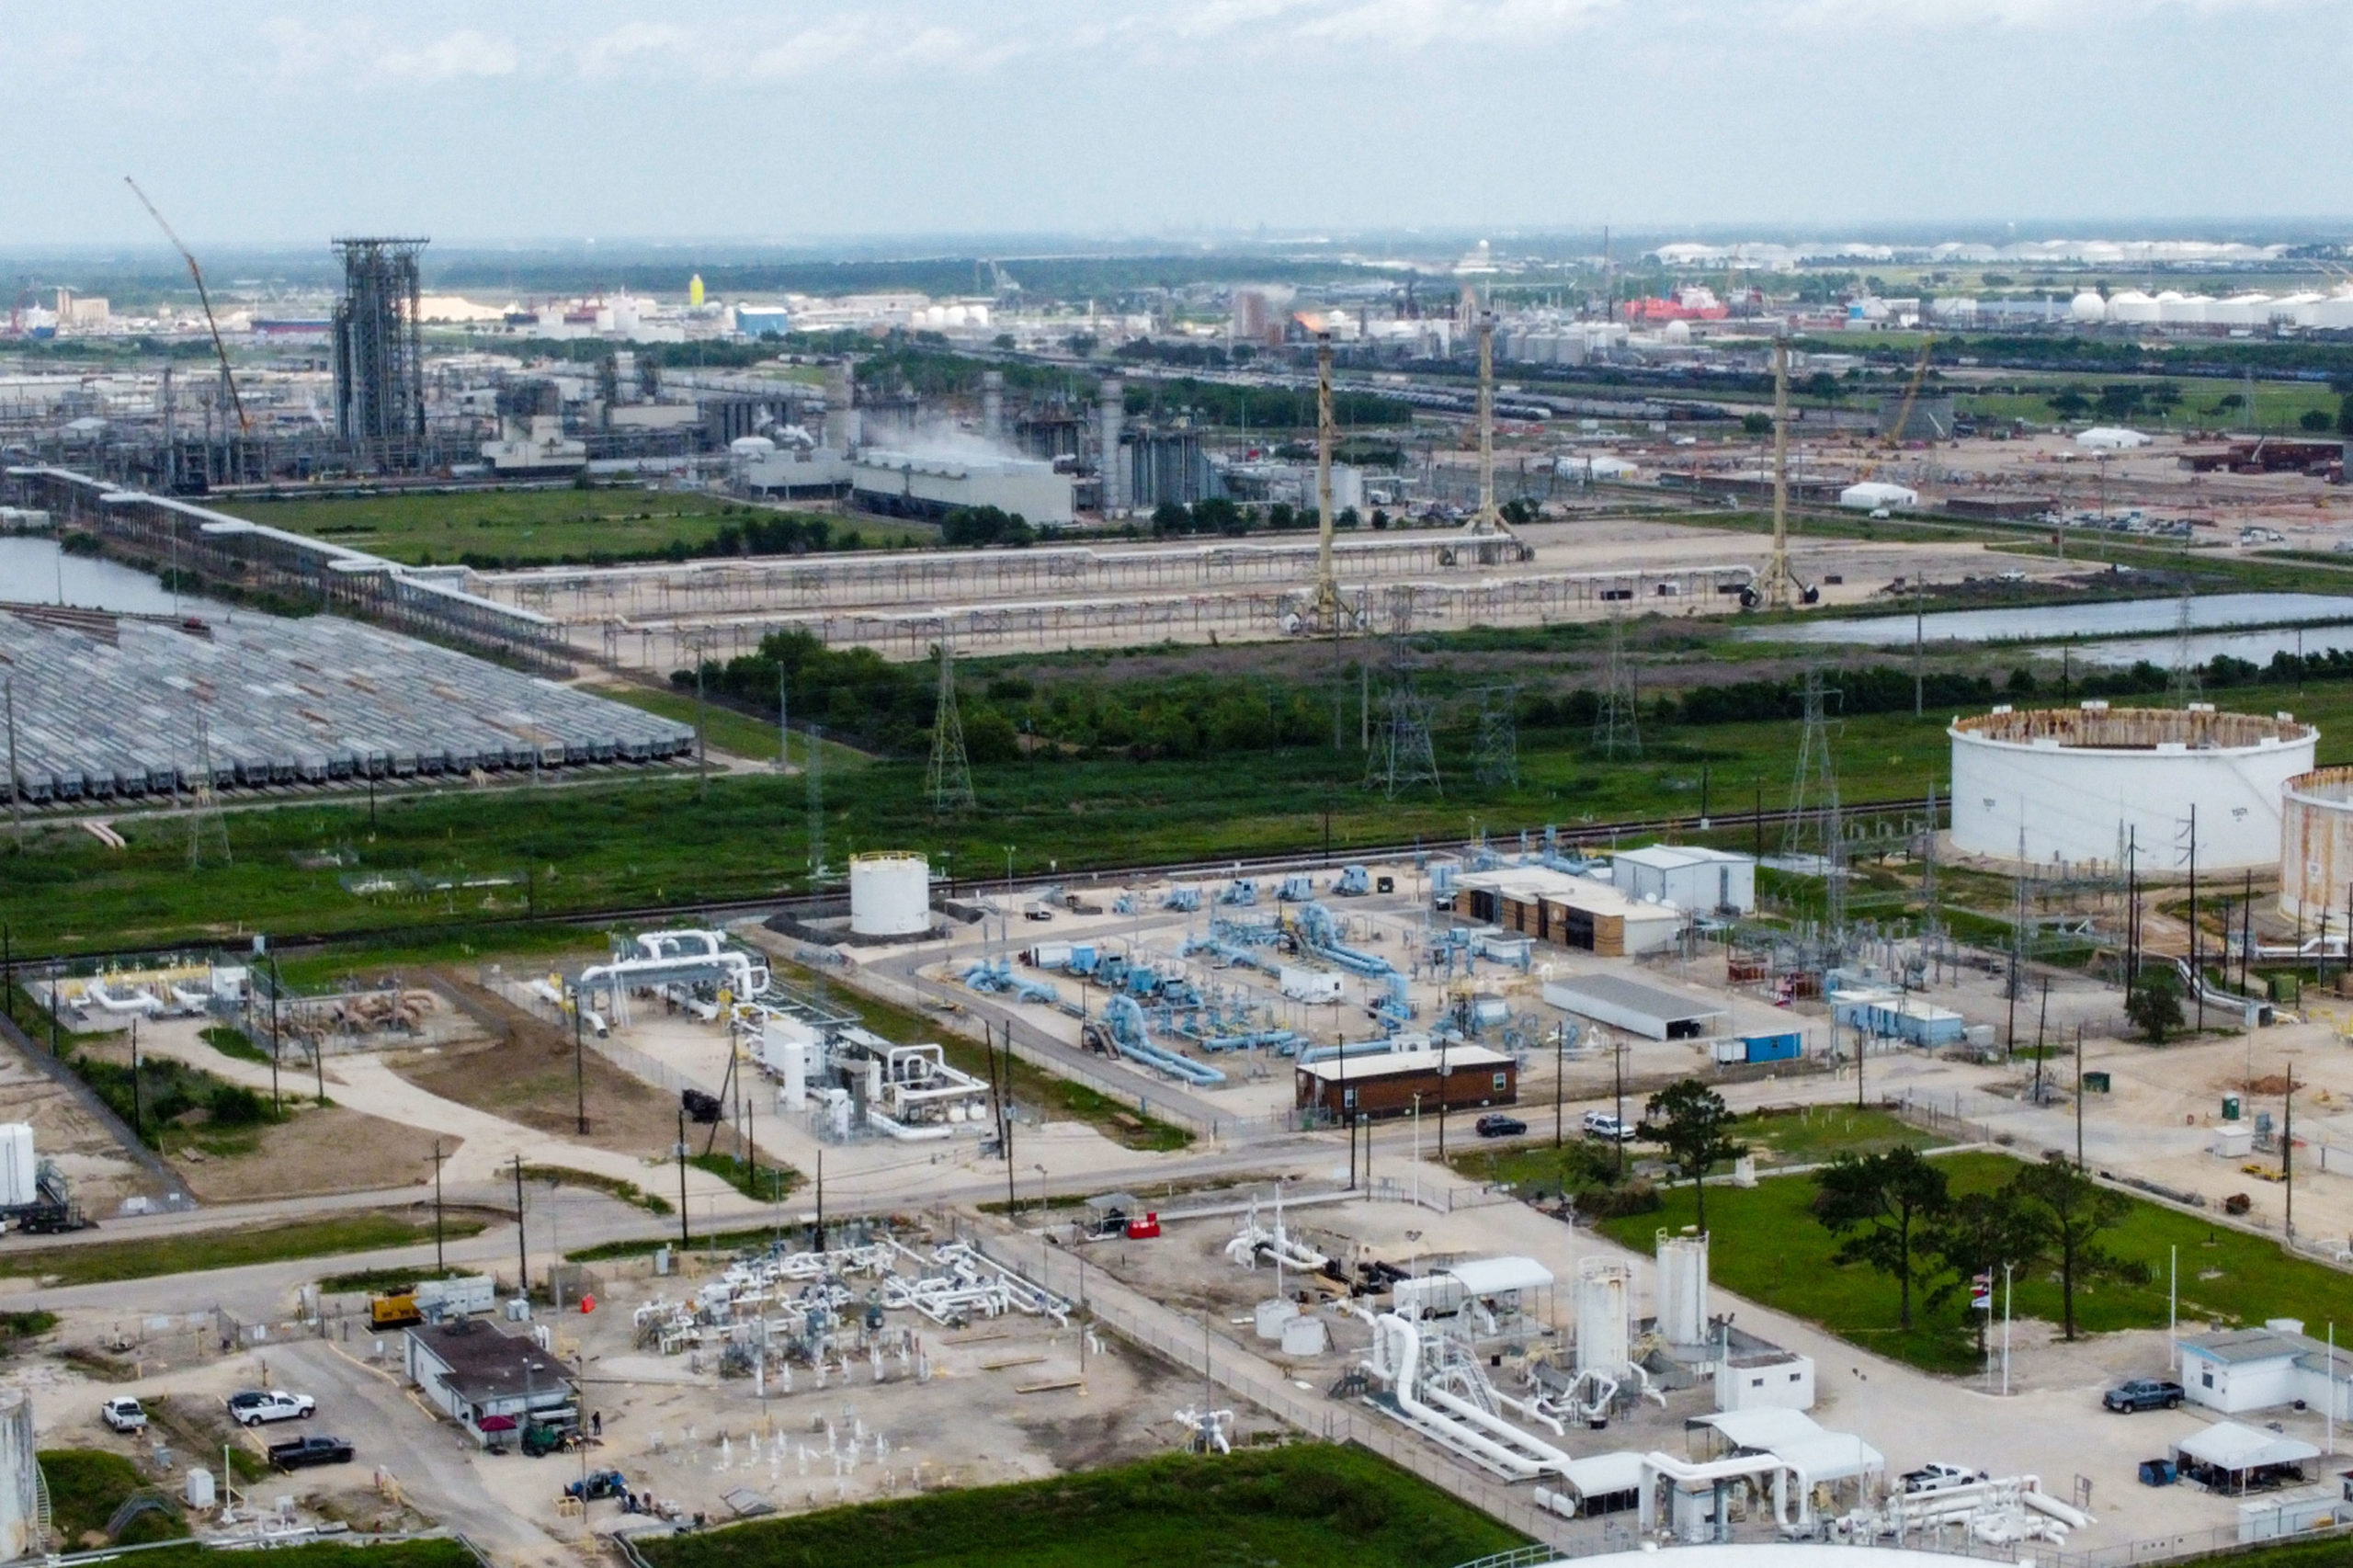 Image showing the Colonial Pipeline Houston Station facility in Pasadena, Texas (East of Houston) taken on May 10, 2021. (eds note : Colonial pipeline facilities are the pale blue pipes in the center of the image, other installations belong to different companies.) - US President Joe Biden said that a Russia-based group was behind the ransomware attack that forced the shutdown of the largest oil pipeline in the eastern United States. The FBI identified the group behind the hack of Colonial Pipeline as DarkSide, a shadowy operation that surfaced last year and attempts to lock up corporate computer systems and force companies to pay to unfreeze them. (Photo by Francois PICARD / AFP) (Photo by FRANCOIS PICARD/AFP via Getty Images)